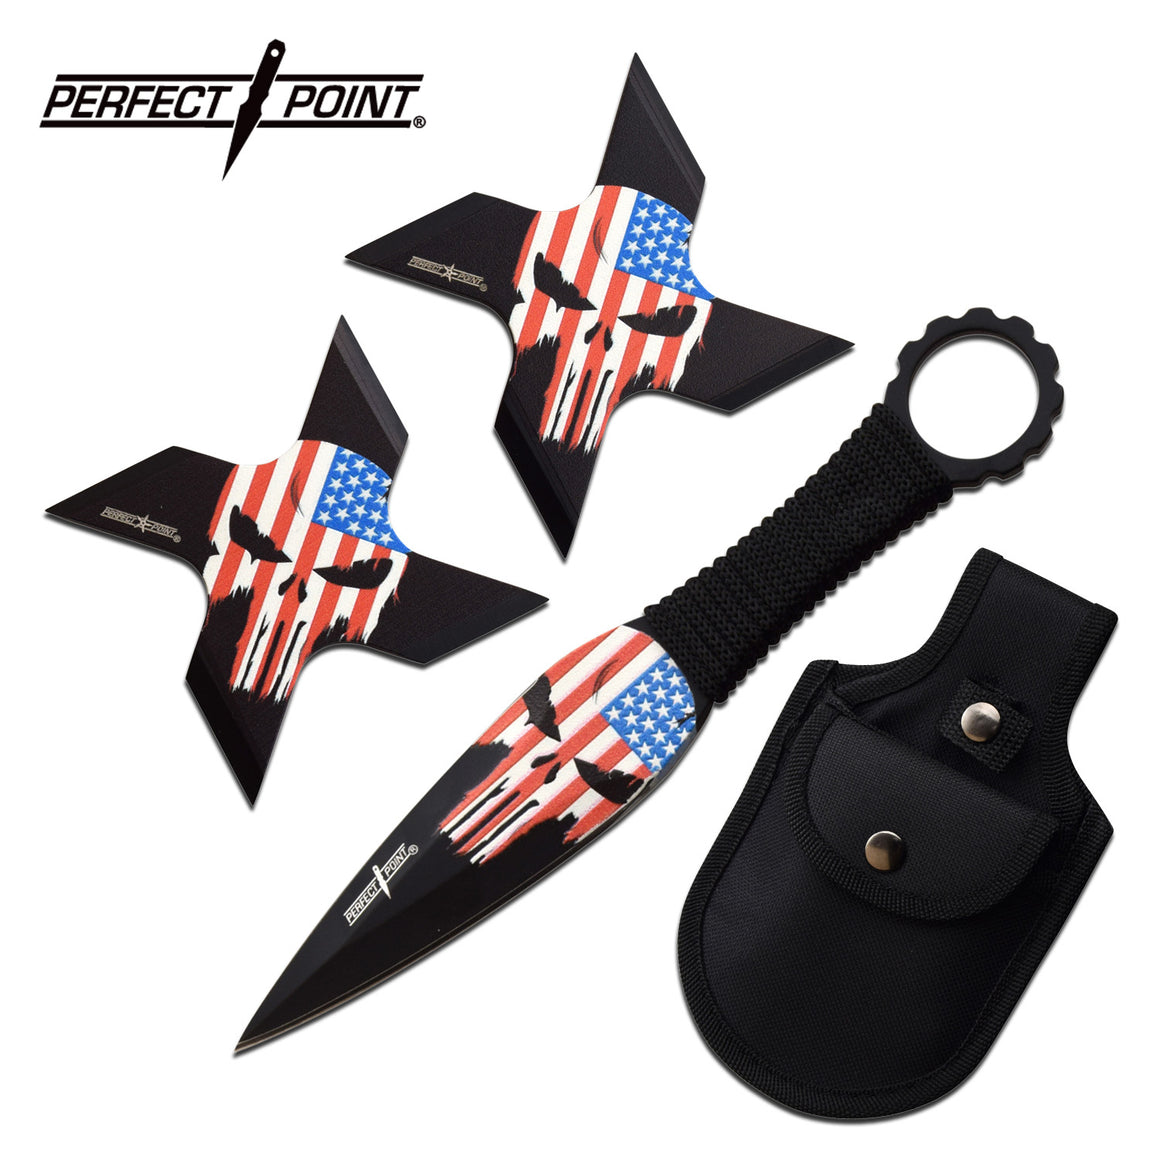 Perfect Point PP-127-3B Throwing Star Set